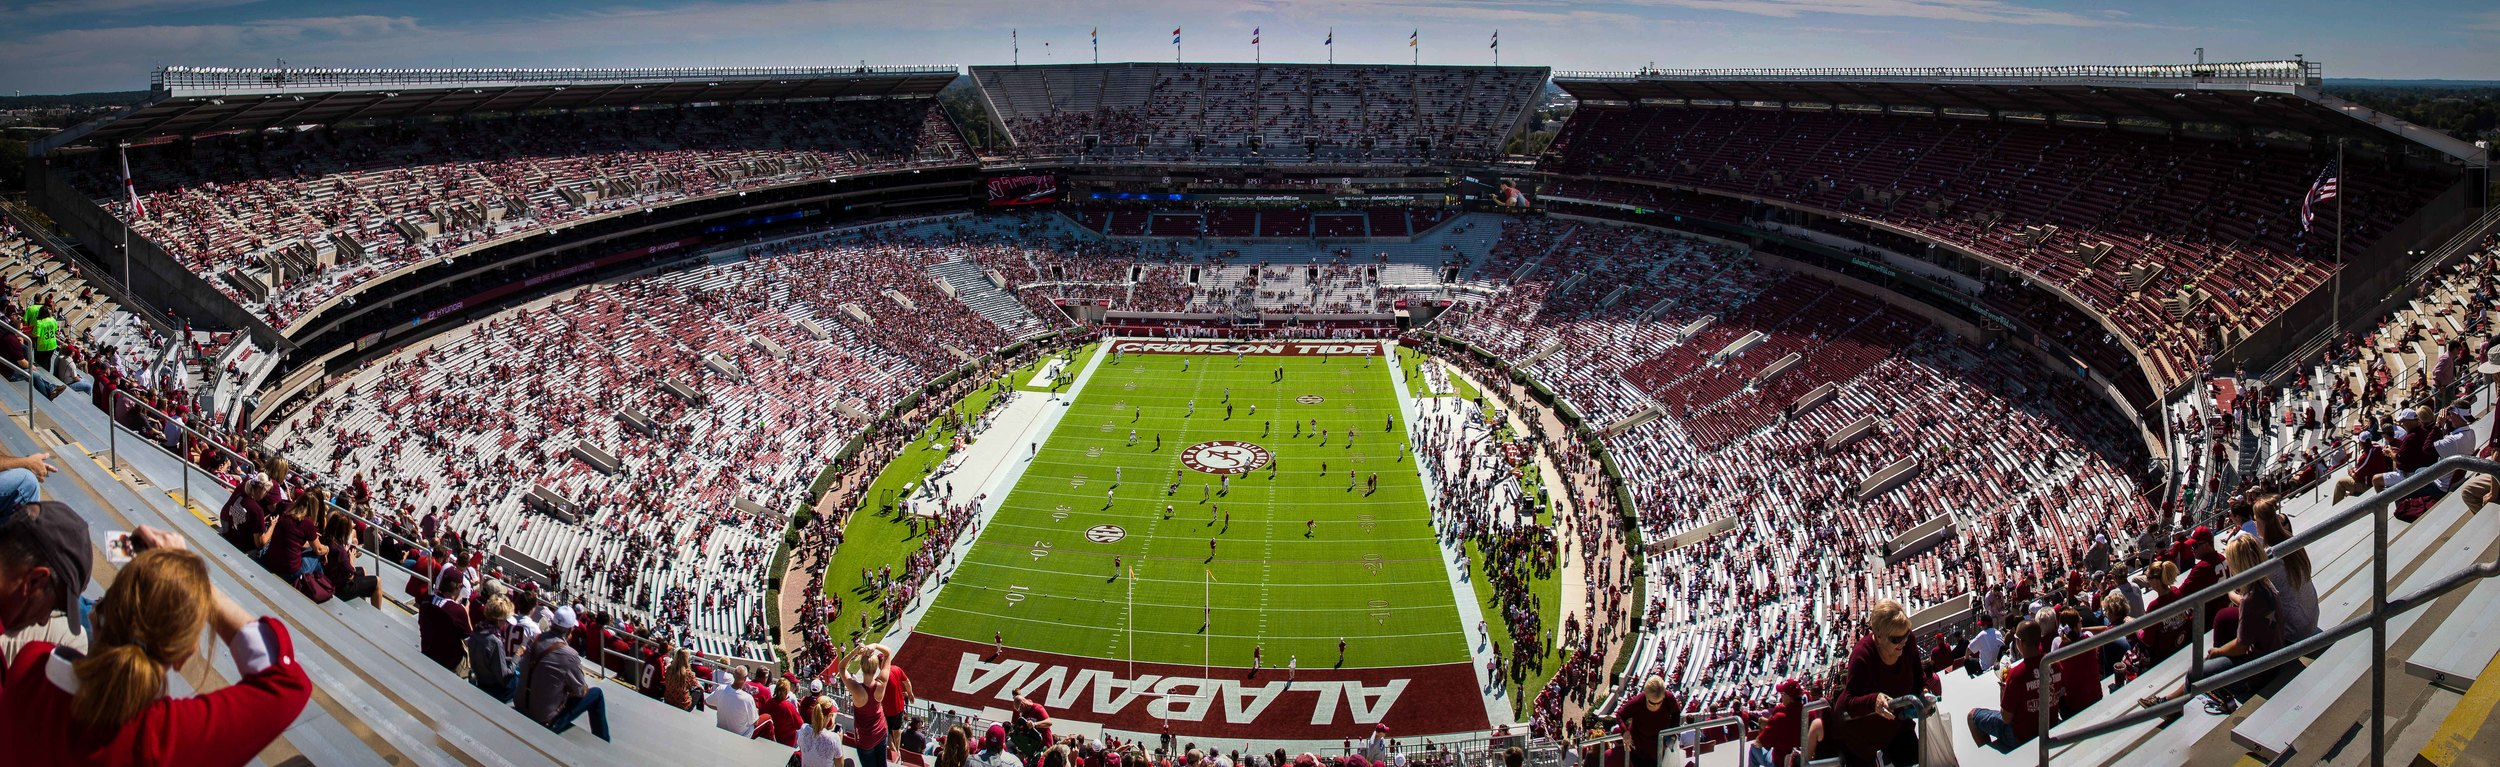 Here is another attempt of a panoramic shot of Bryant-Denny stadium. I arrived 2 hours before kickoff to grab this shot. I was a bit ticked at one of the stadium workers who told me that I could not get to the top if I didn't have a ticket to sit up there. Really? You telling me that I have to buy a ticket to sit up there even though I am in the stadium?!?!. Needless to say I was able to find my way to the north end zone and take some shots and make this shot.